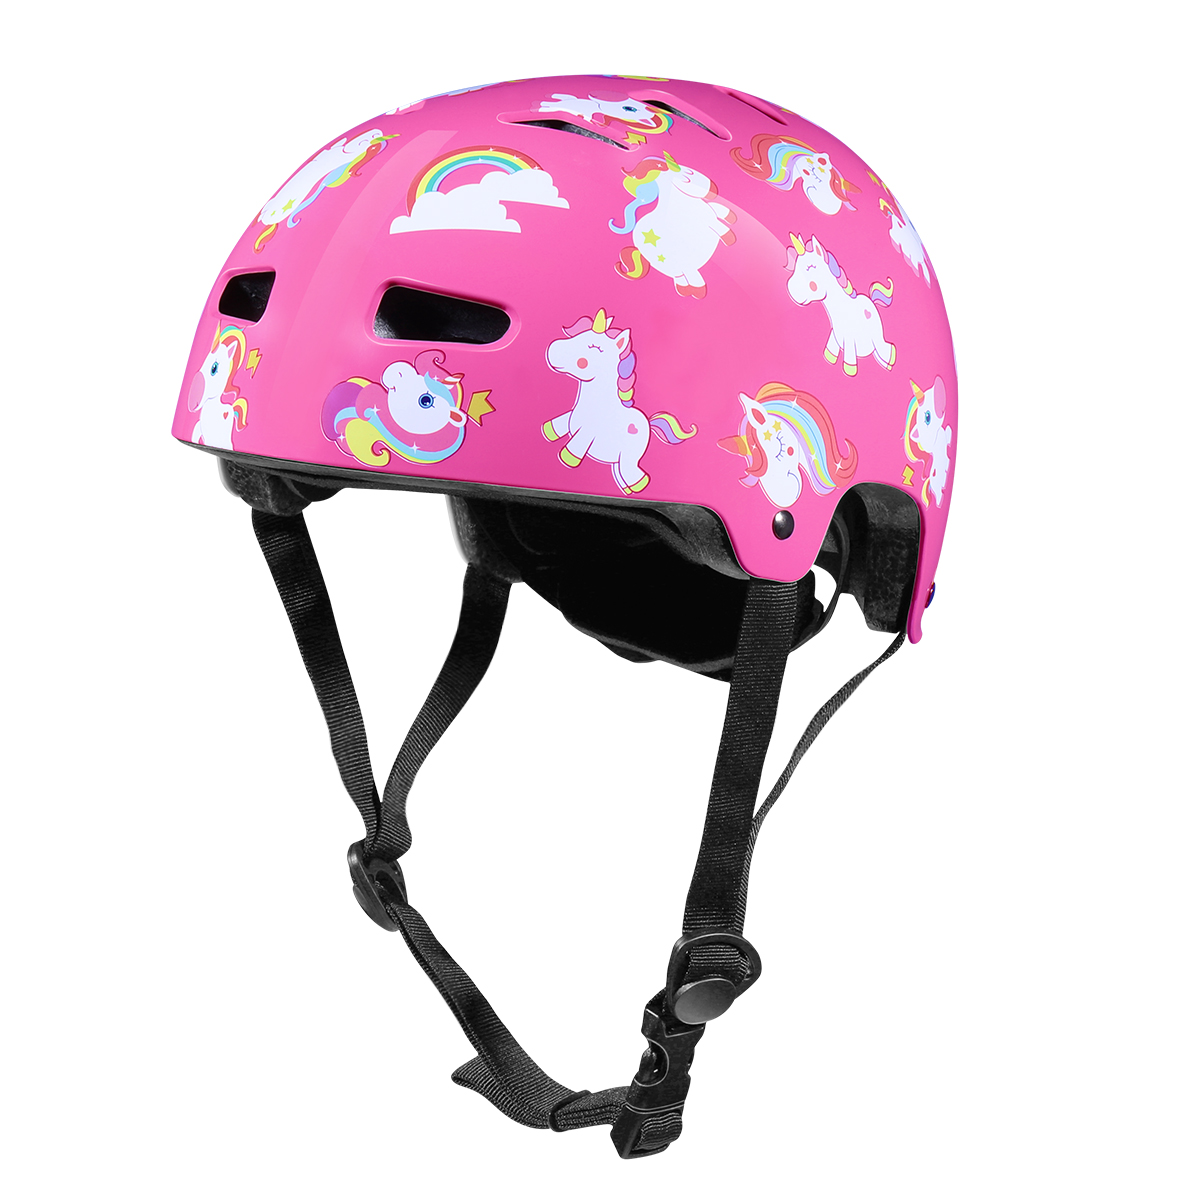 Clispeed Child Bike Helmet Sports Protective Gear Head Protector Guard For Cycling Skating Scooter Bicycle Accessories